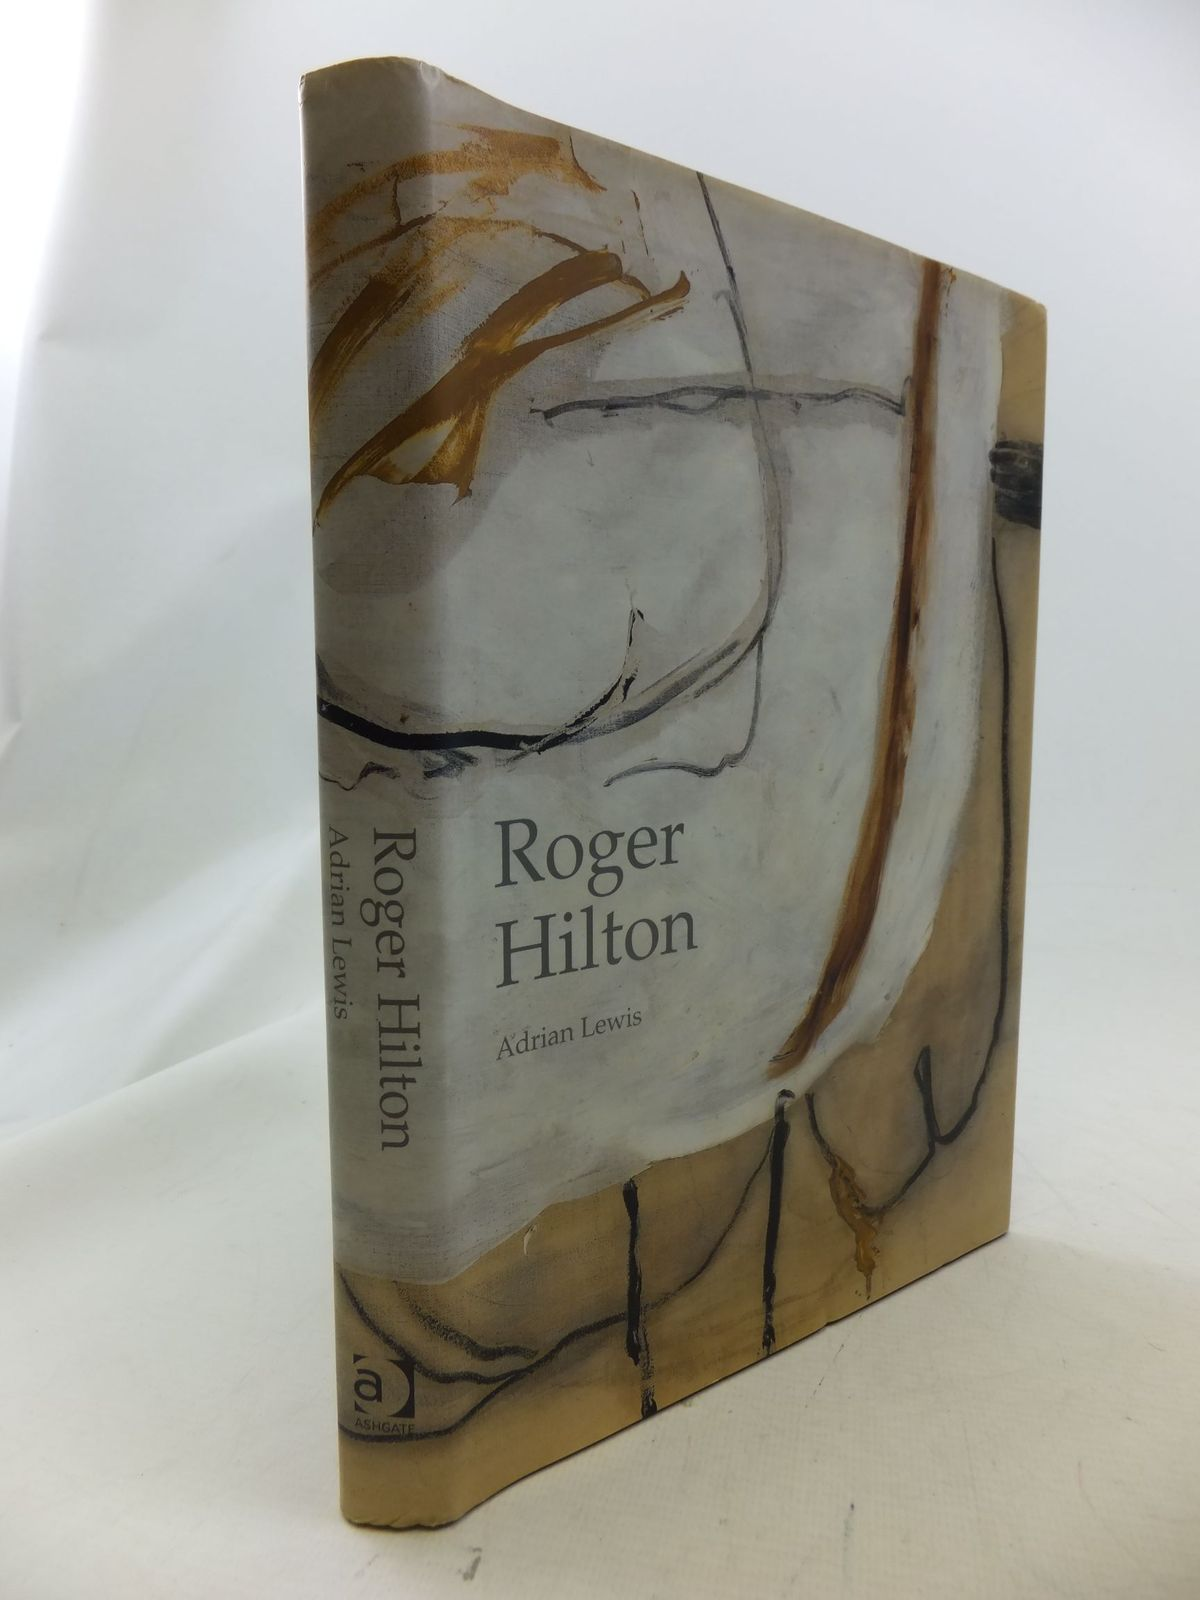 Photo of ROGER HILTON written by Lewis, Adrian illustrated by Hilton, Roger published by Ashgate Publishing Company (STOCK CODE: 2114681)  for sale by Stella & Rose's Books